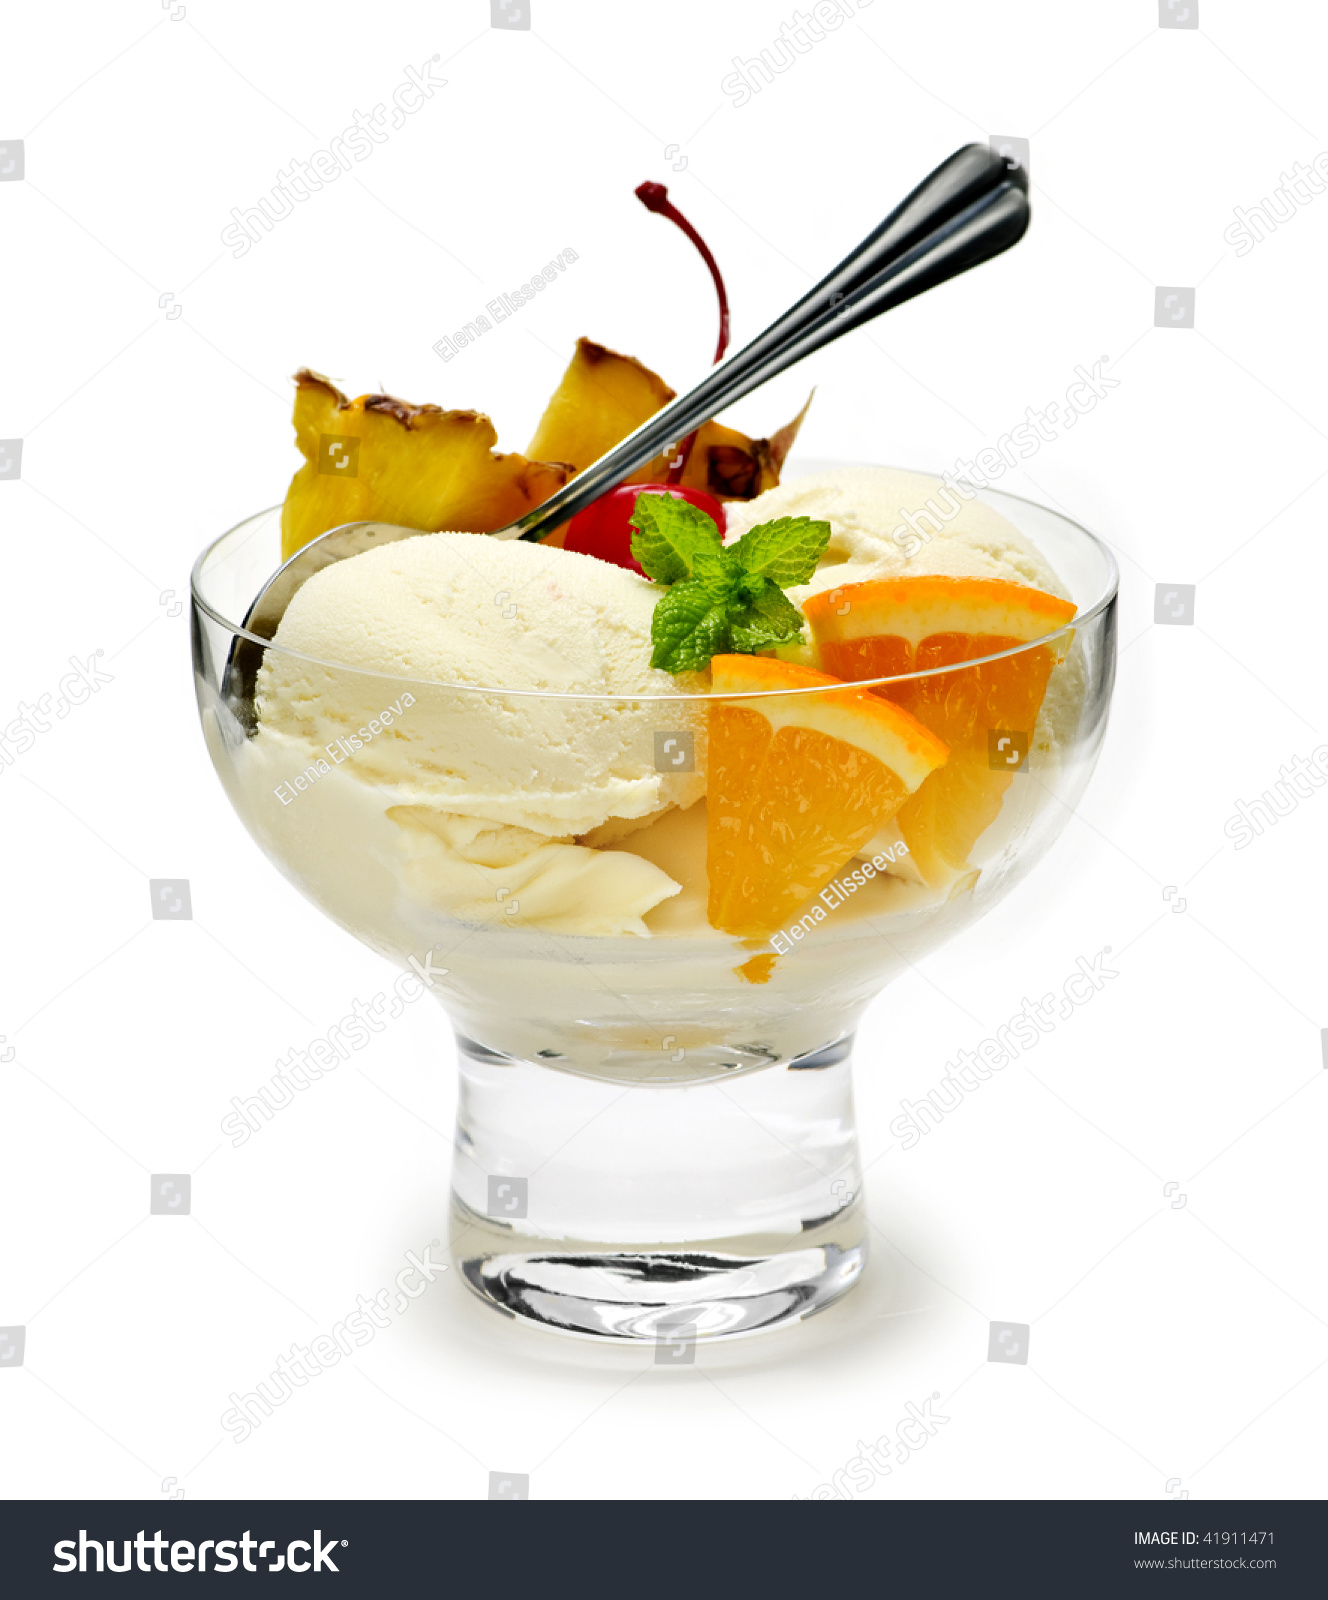 Get The Scoop And Dish It Out: Dish Of Ice Cream And Fruit Isolated On White Background Stock Photo 41911471 : Shutterstock